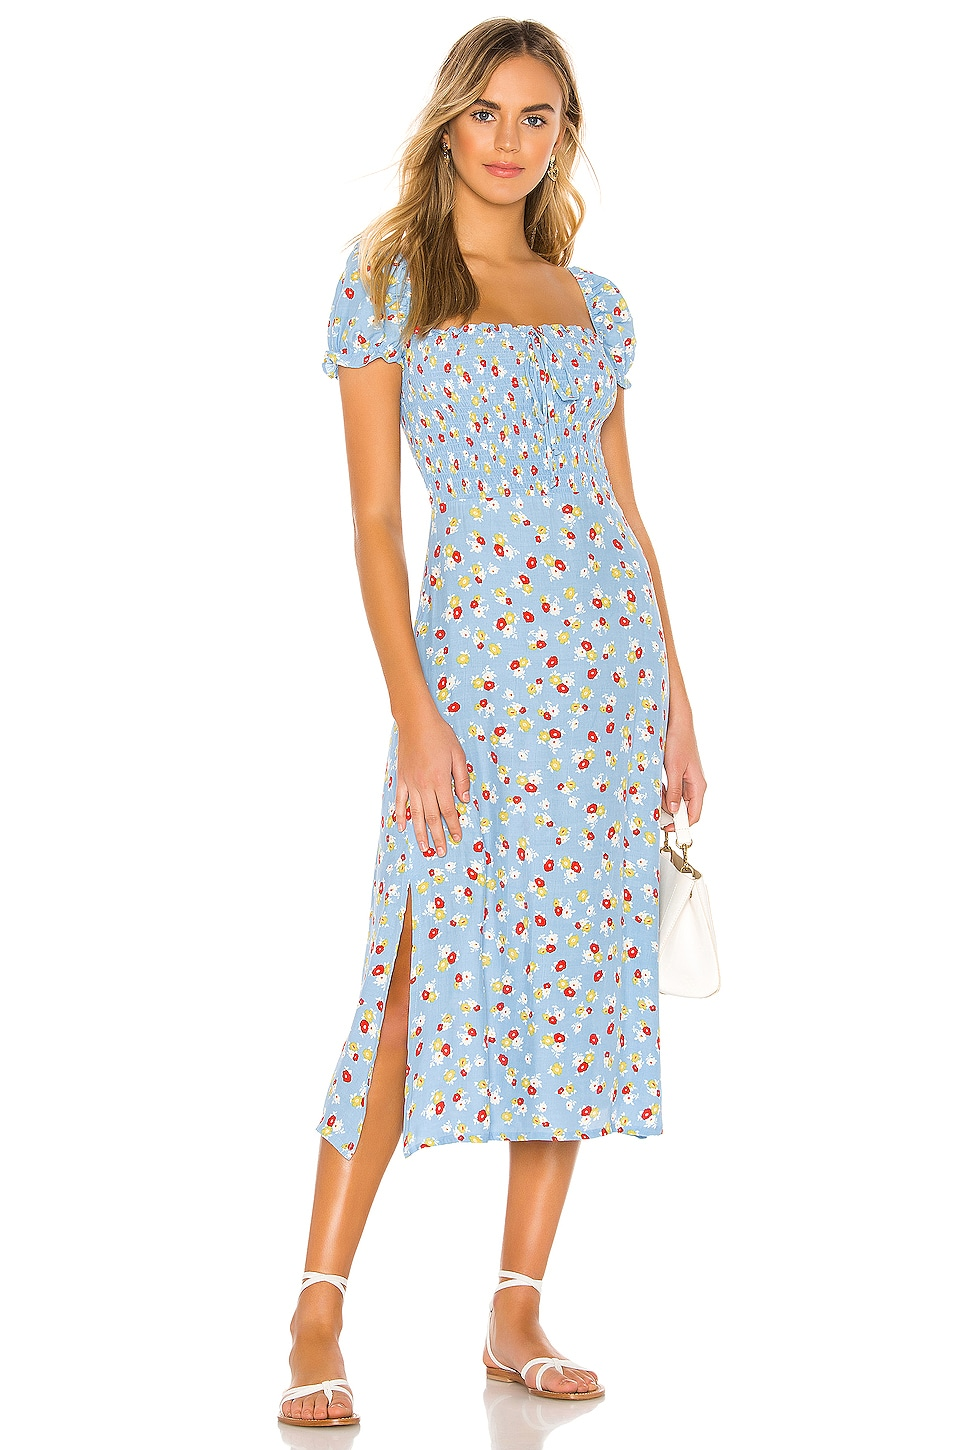 FAITHFULL THE BRAND Castilo Midi Dress in Blue Jasmine Floral